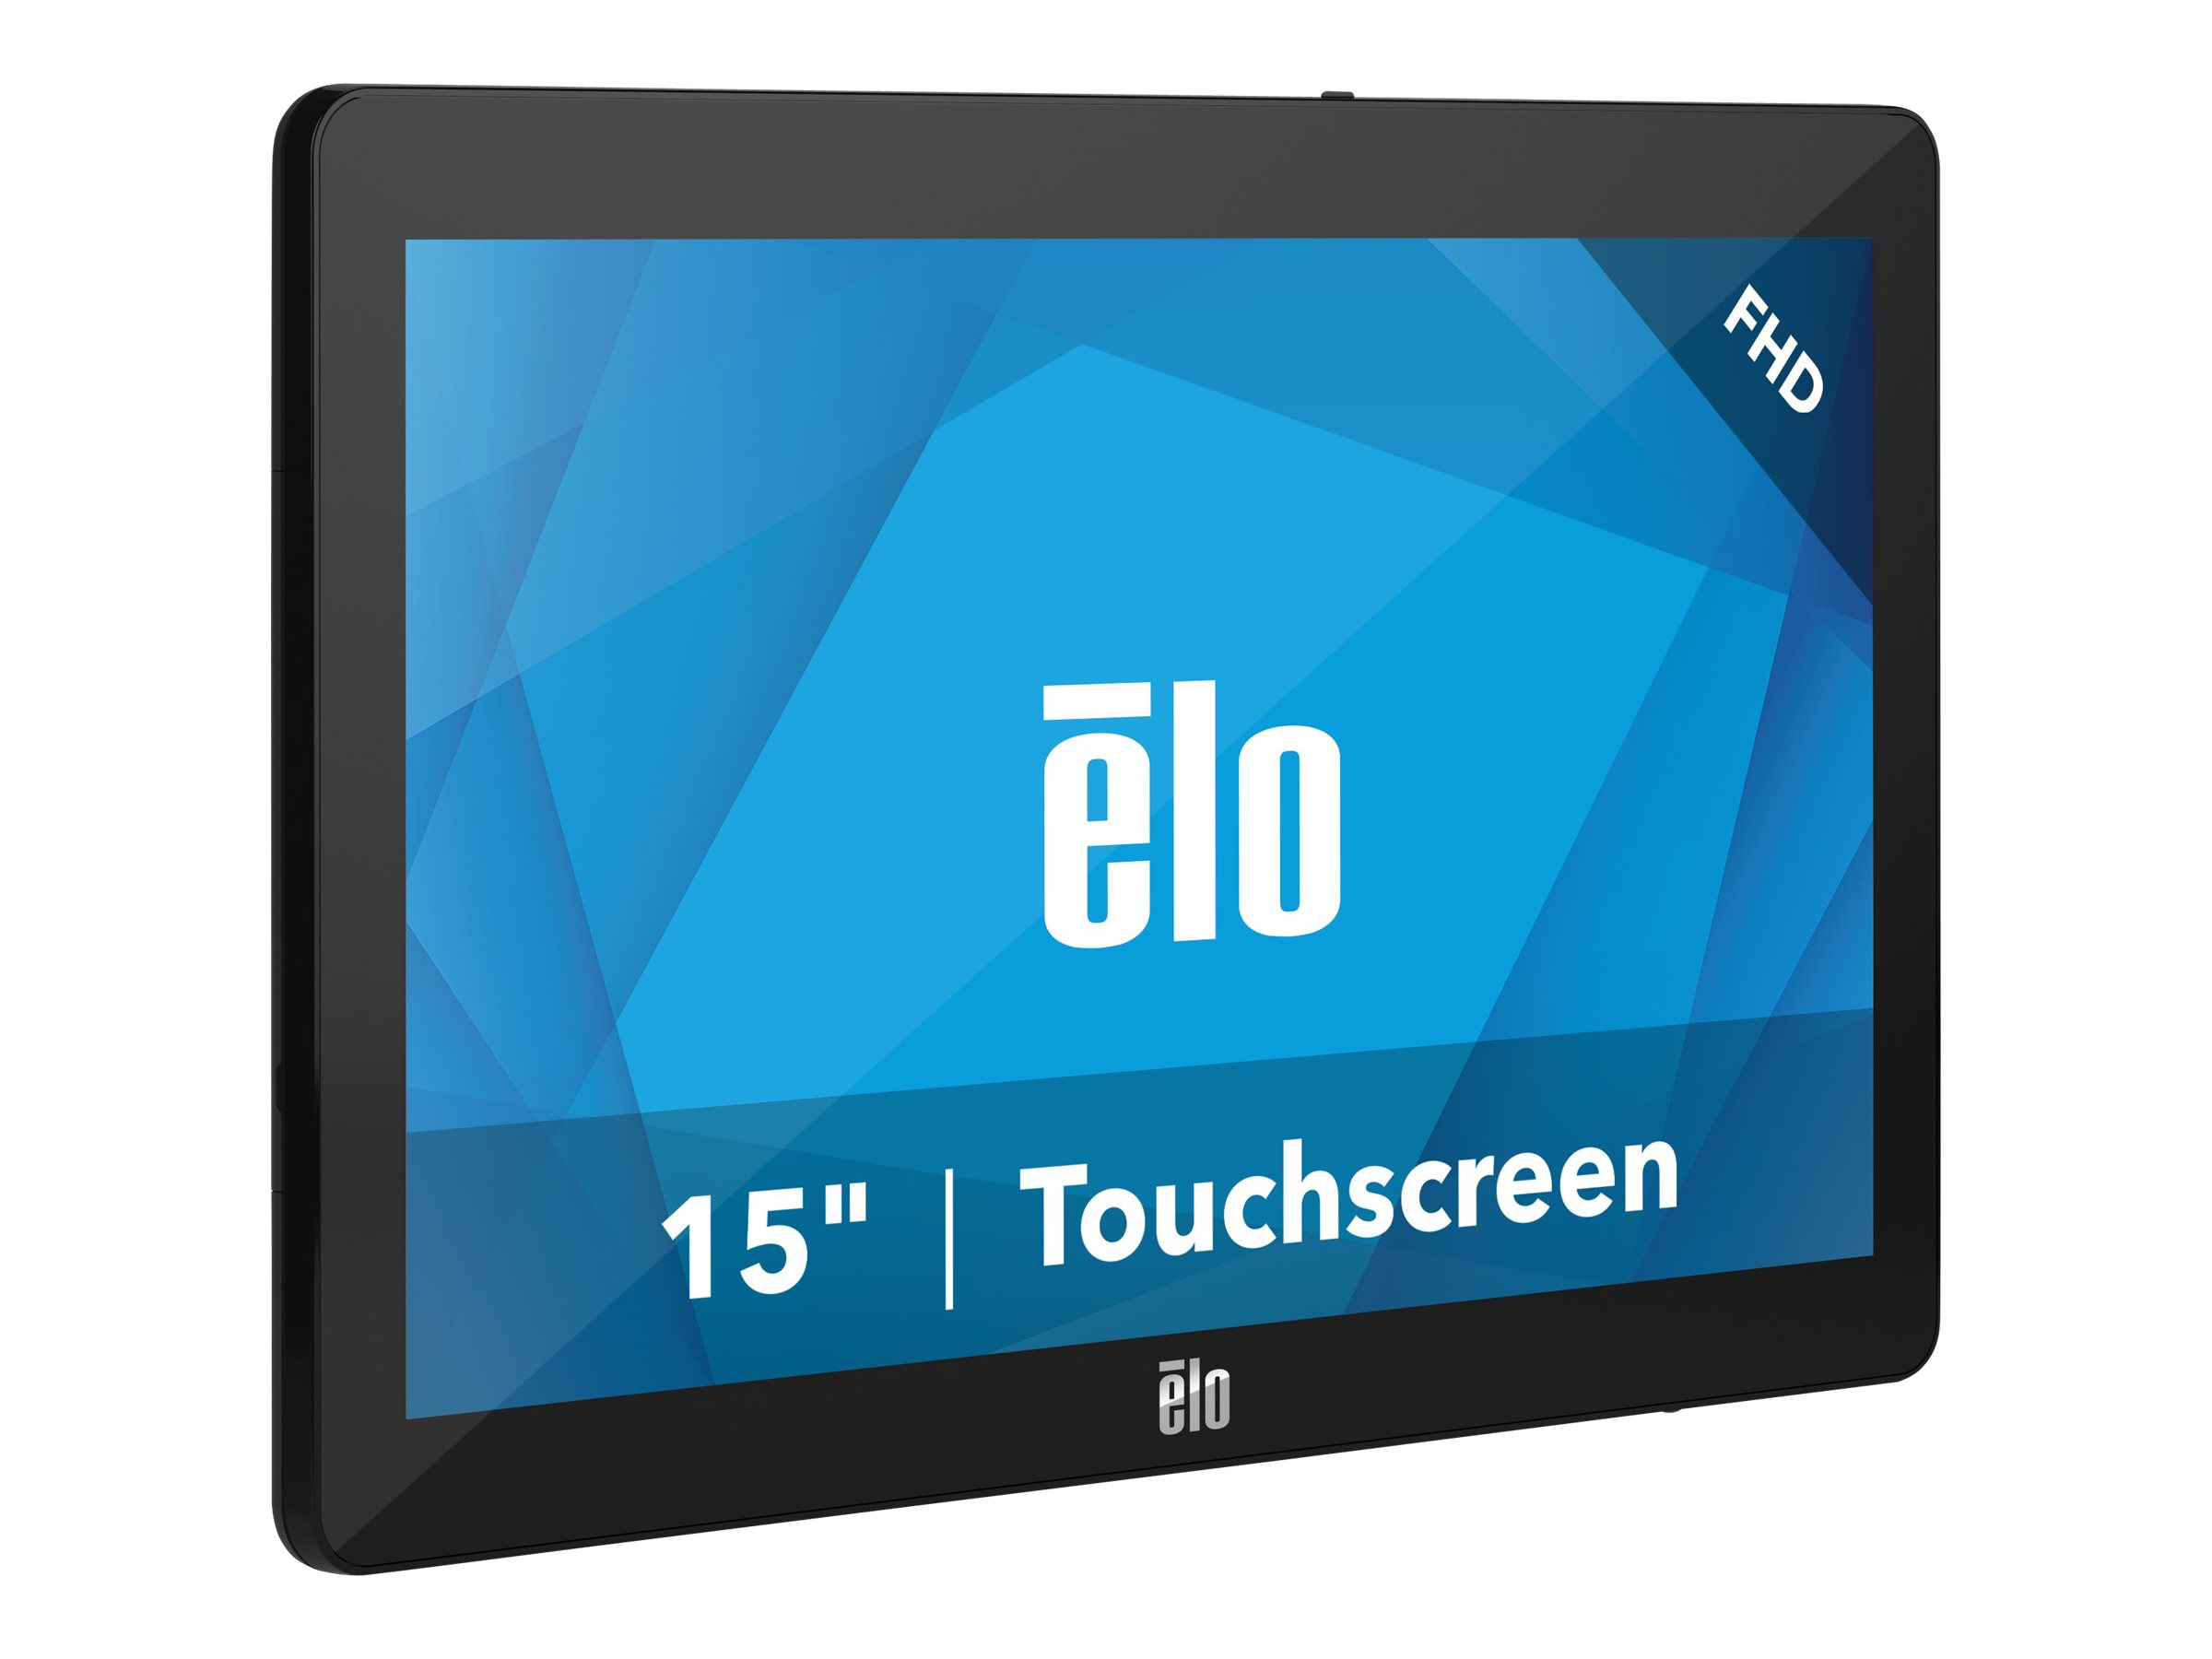 EloPOS System - with Wall Mount I/O Hub - all-in-one - Core i5 8500T 2.1 GHz - 8 GB - SSD 128 GB - LED 15.6